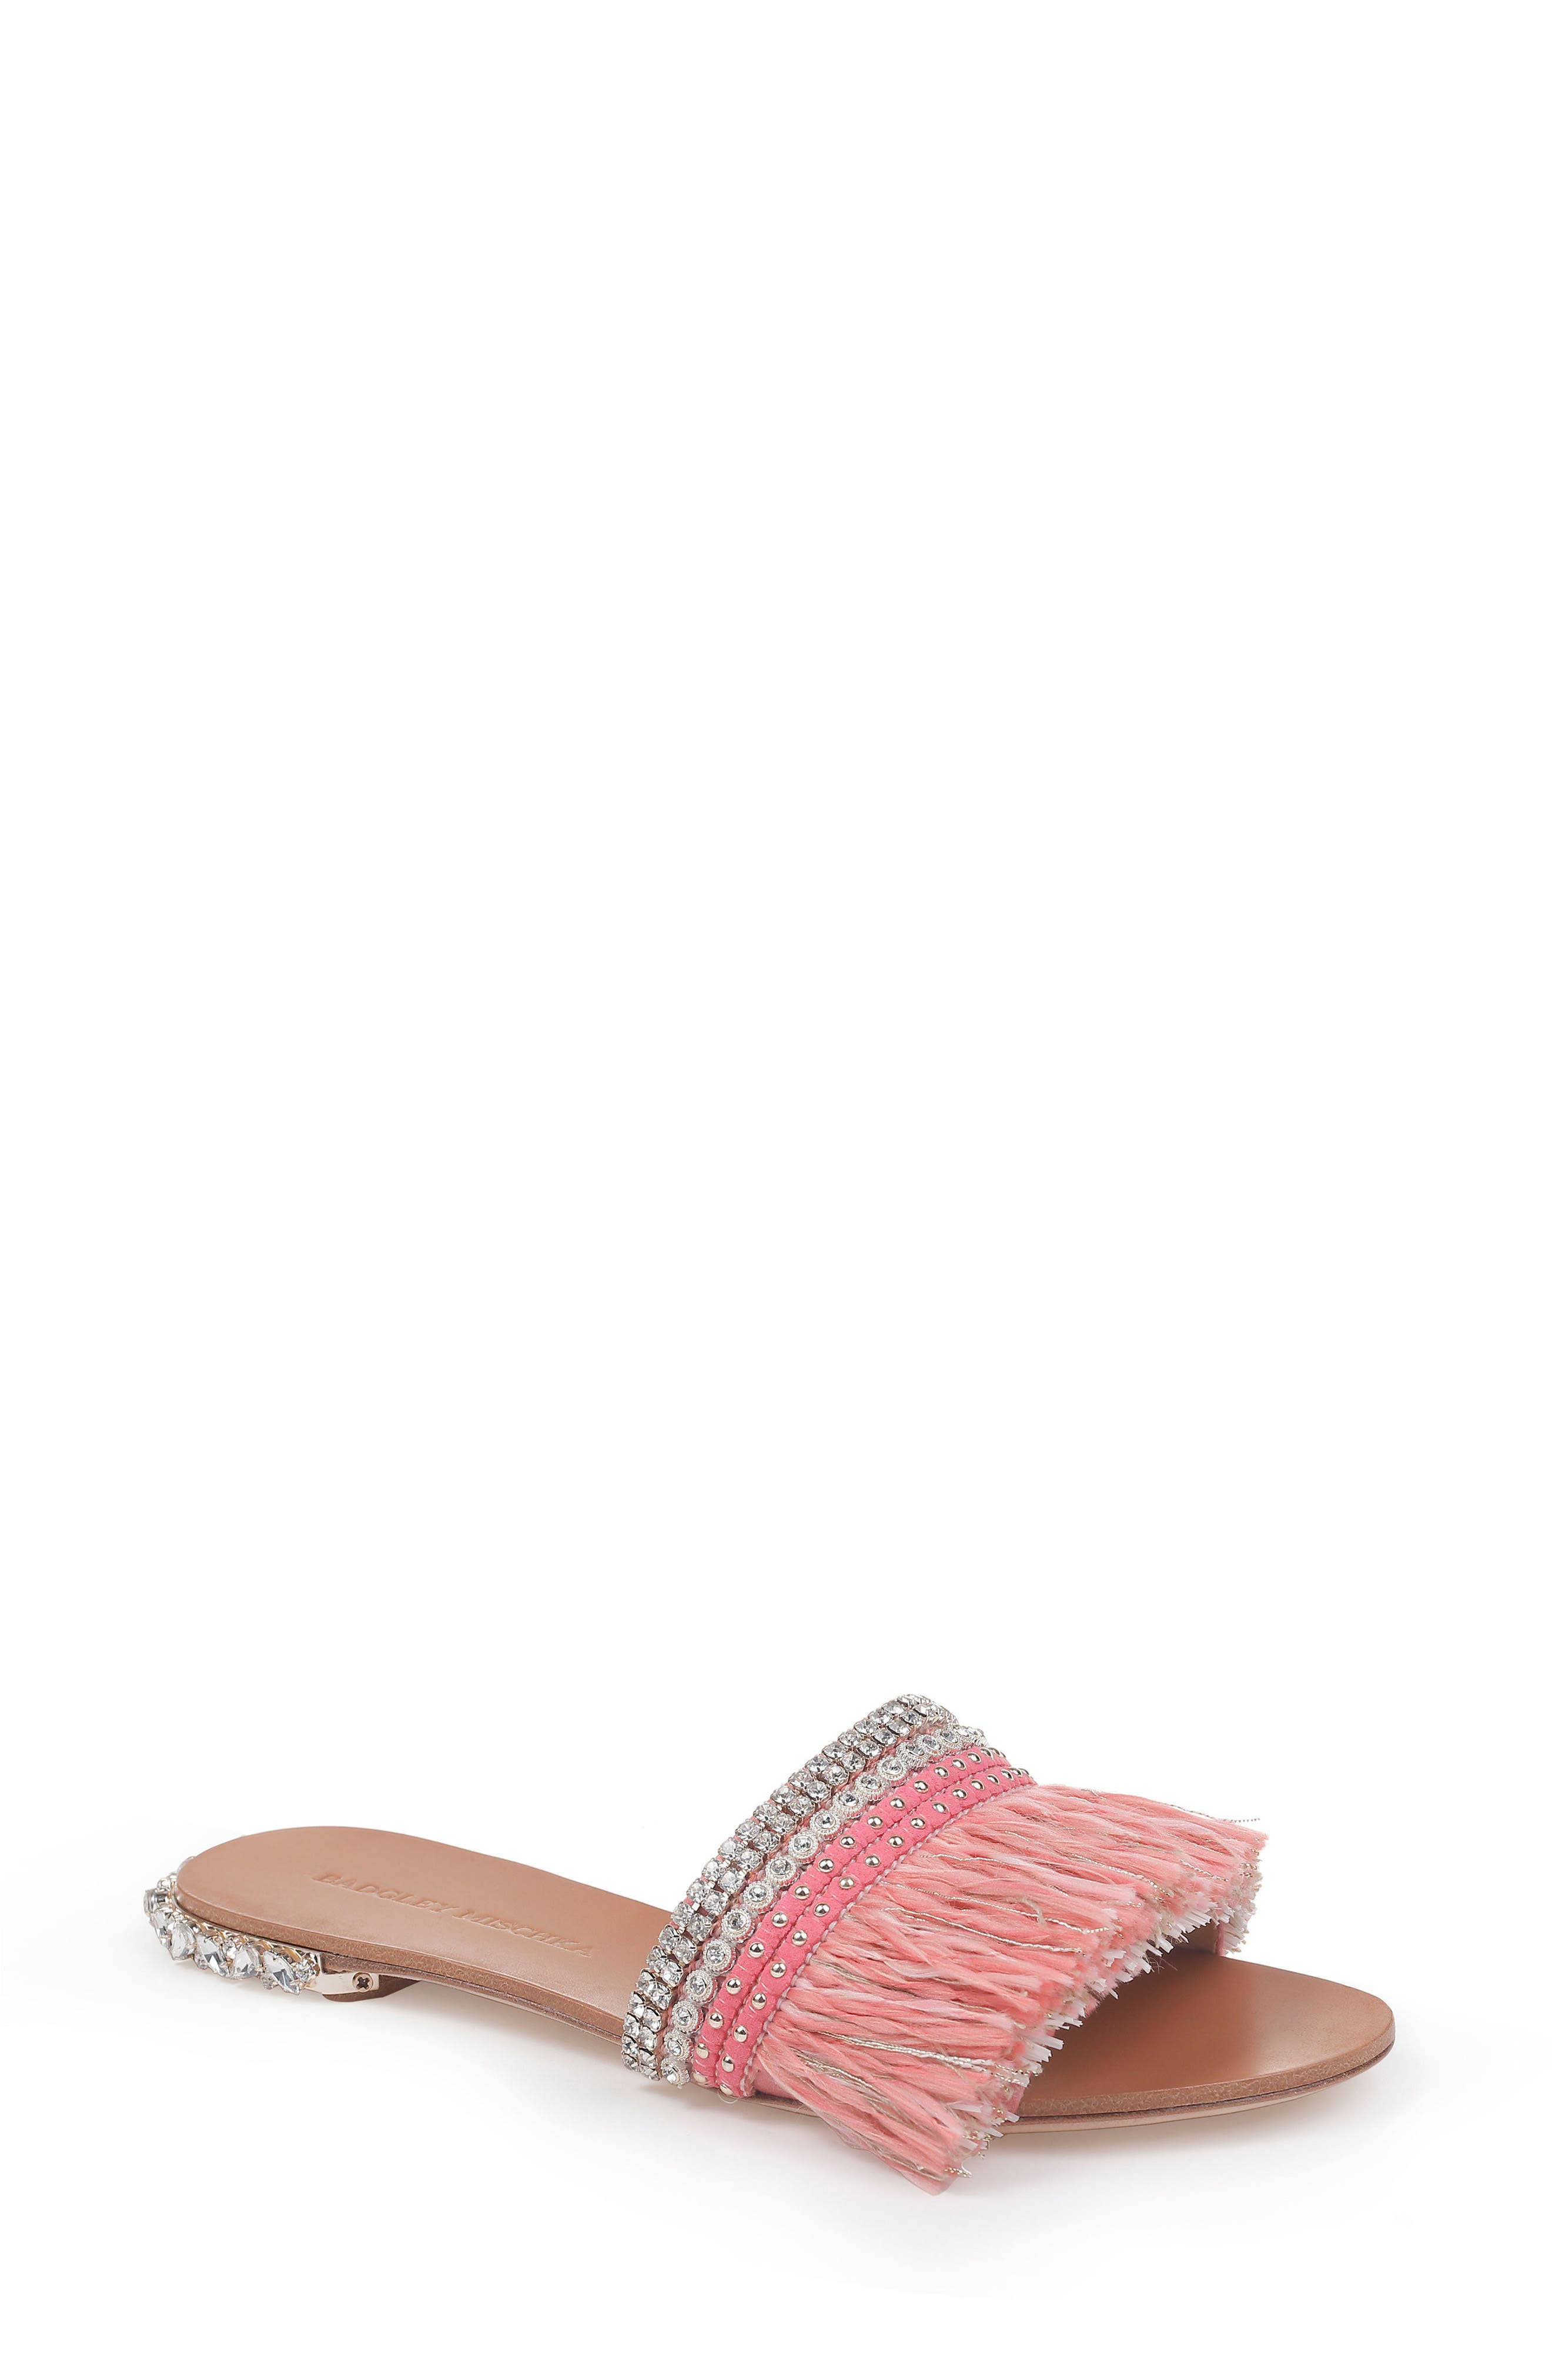 Sharlene Sandal,                         Main,                         color, GRAPEFRUIT SATIN